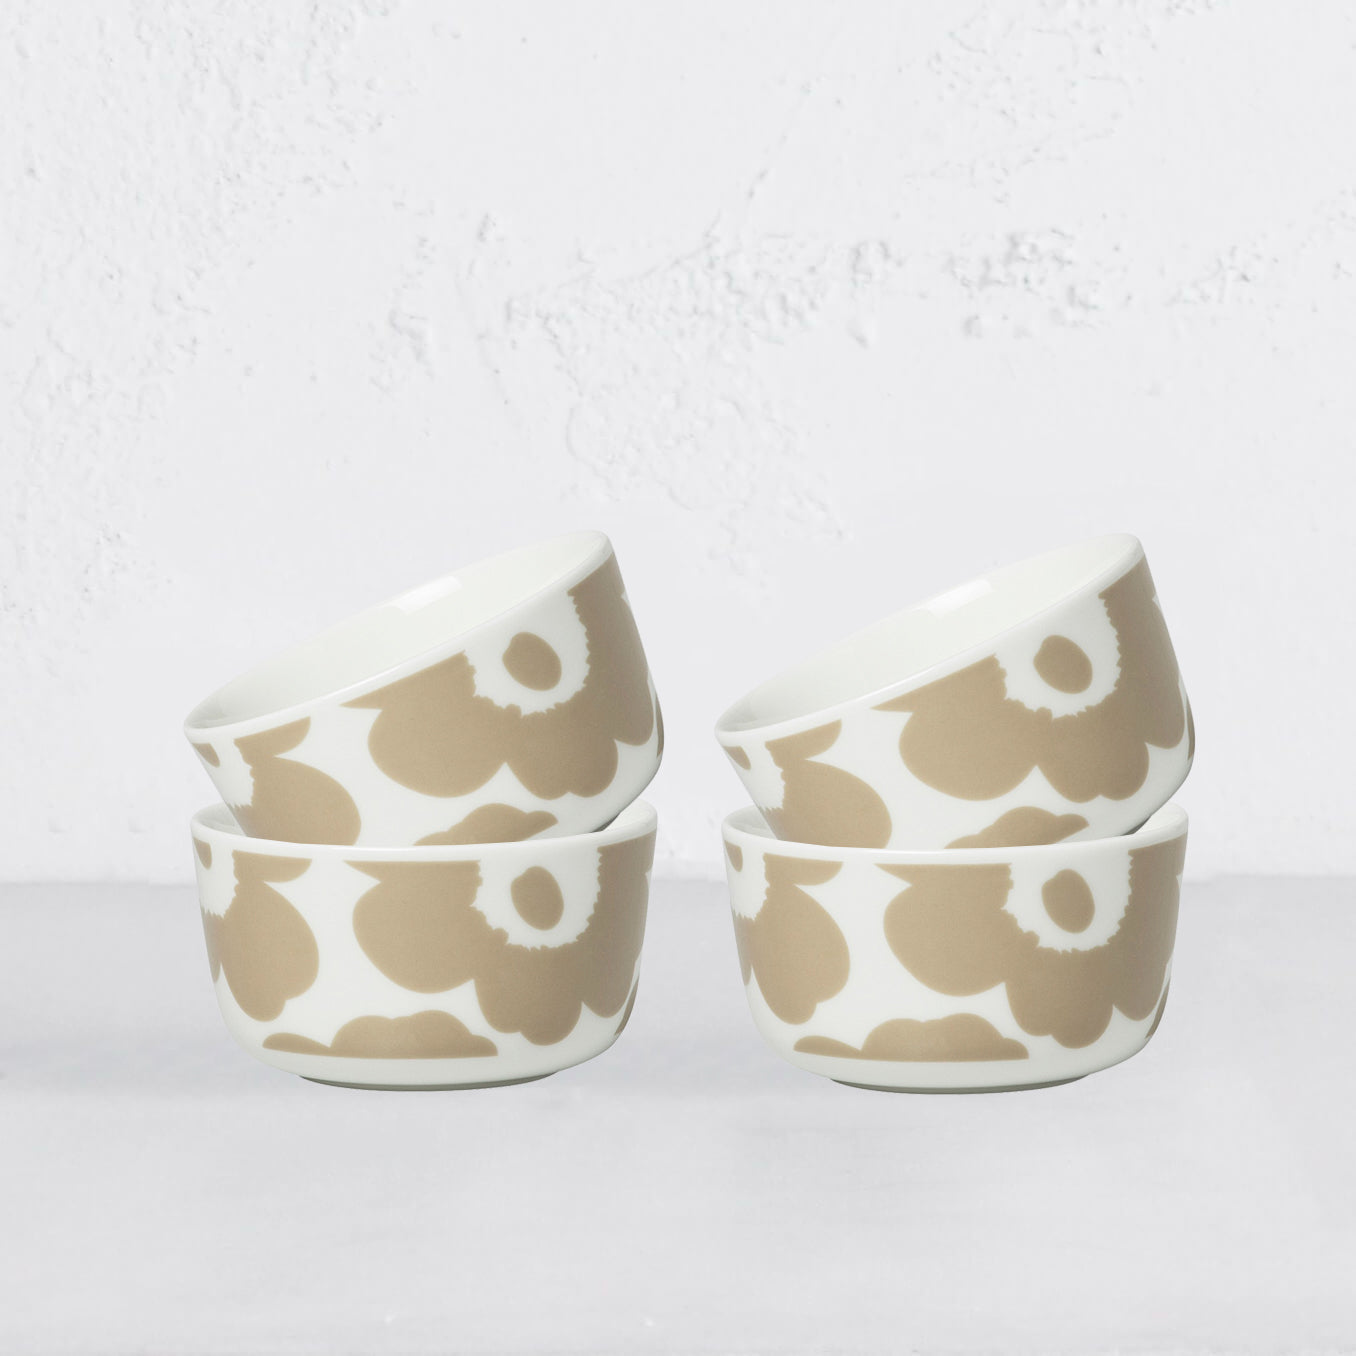 MARIMEKKO  |  UNIKKO BOWL 2.5DL  |  BEIGE & WHITE  SET OF 4